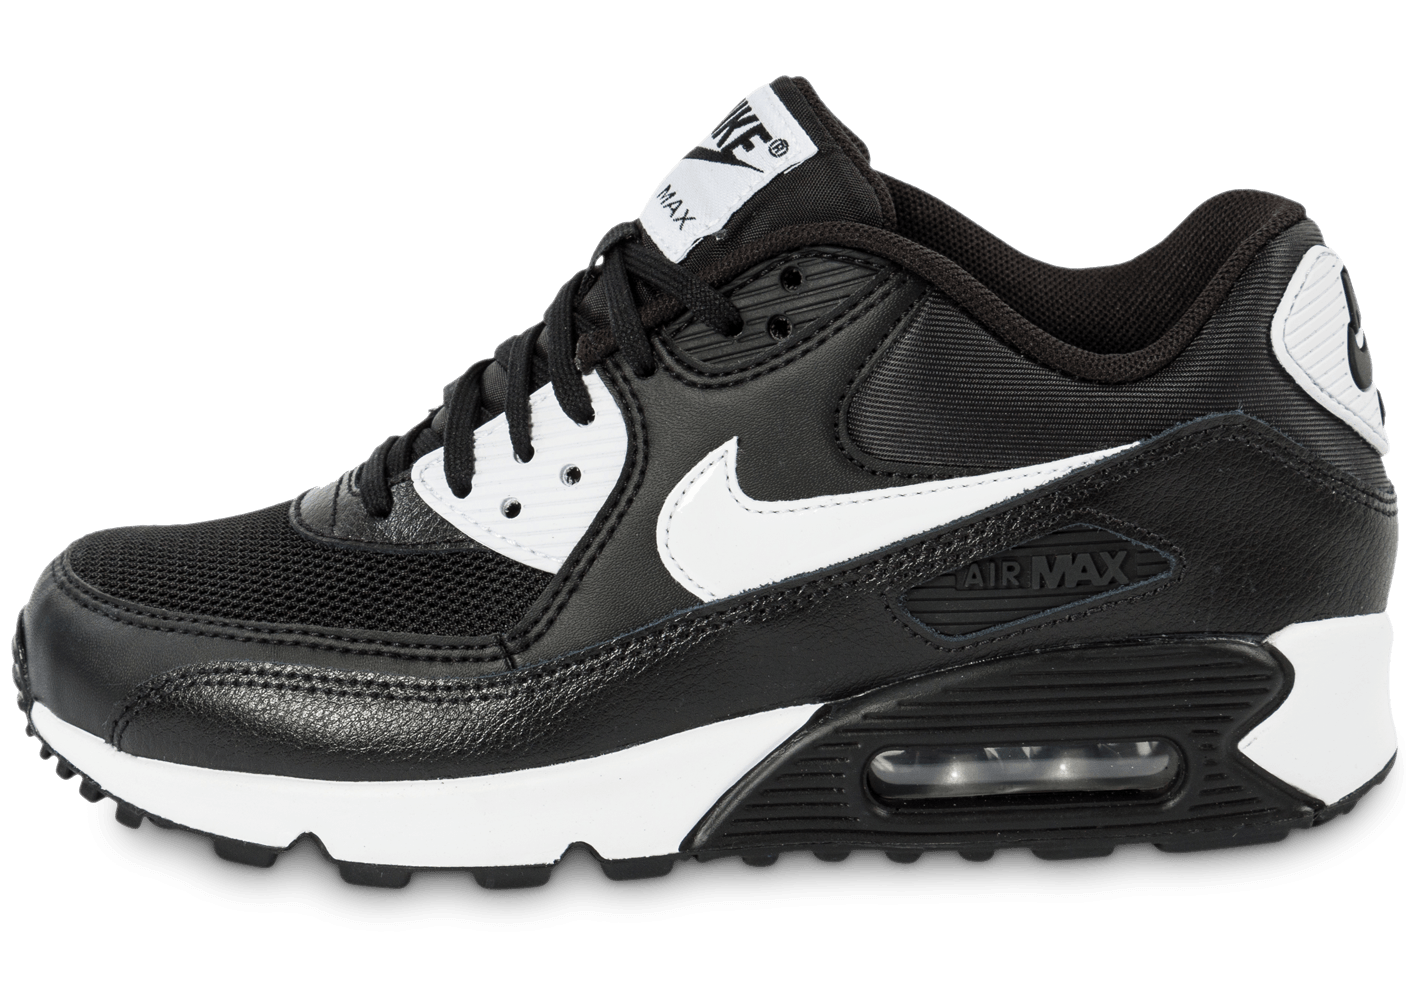 nike air max 90 essential noire et blanche chaussures chaussures chausport. Black Bedroom Furniture Sets. Home Design Ideas